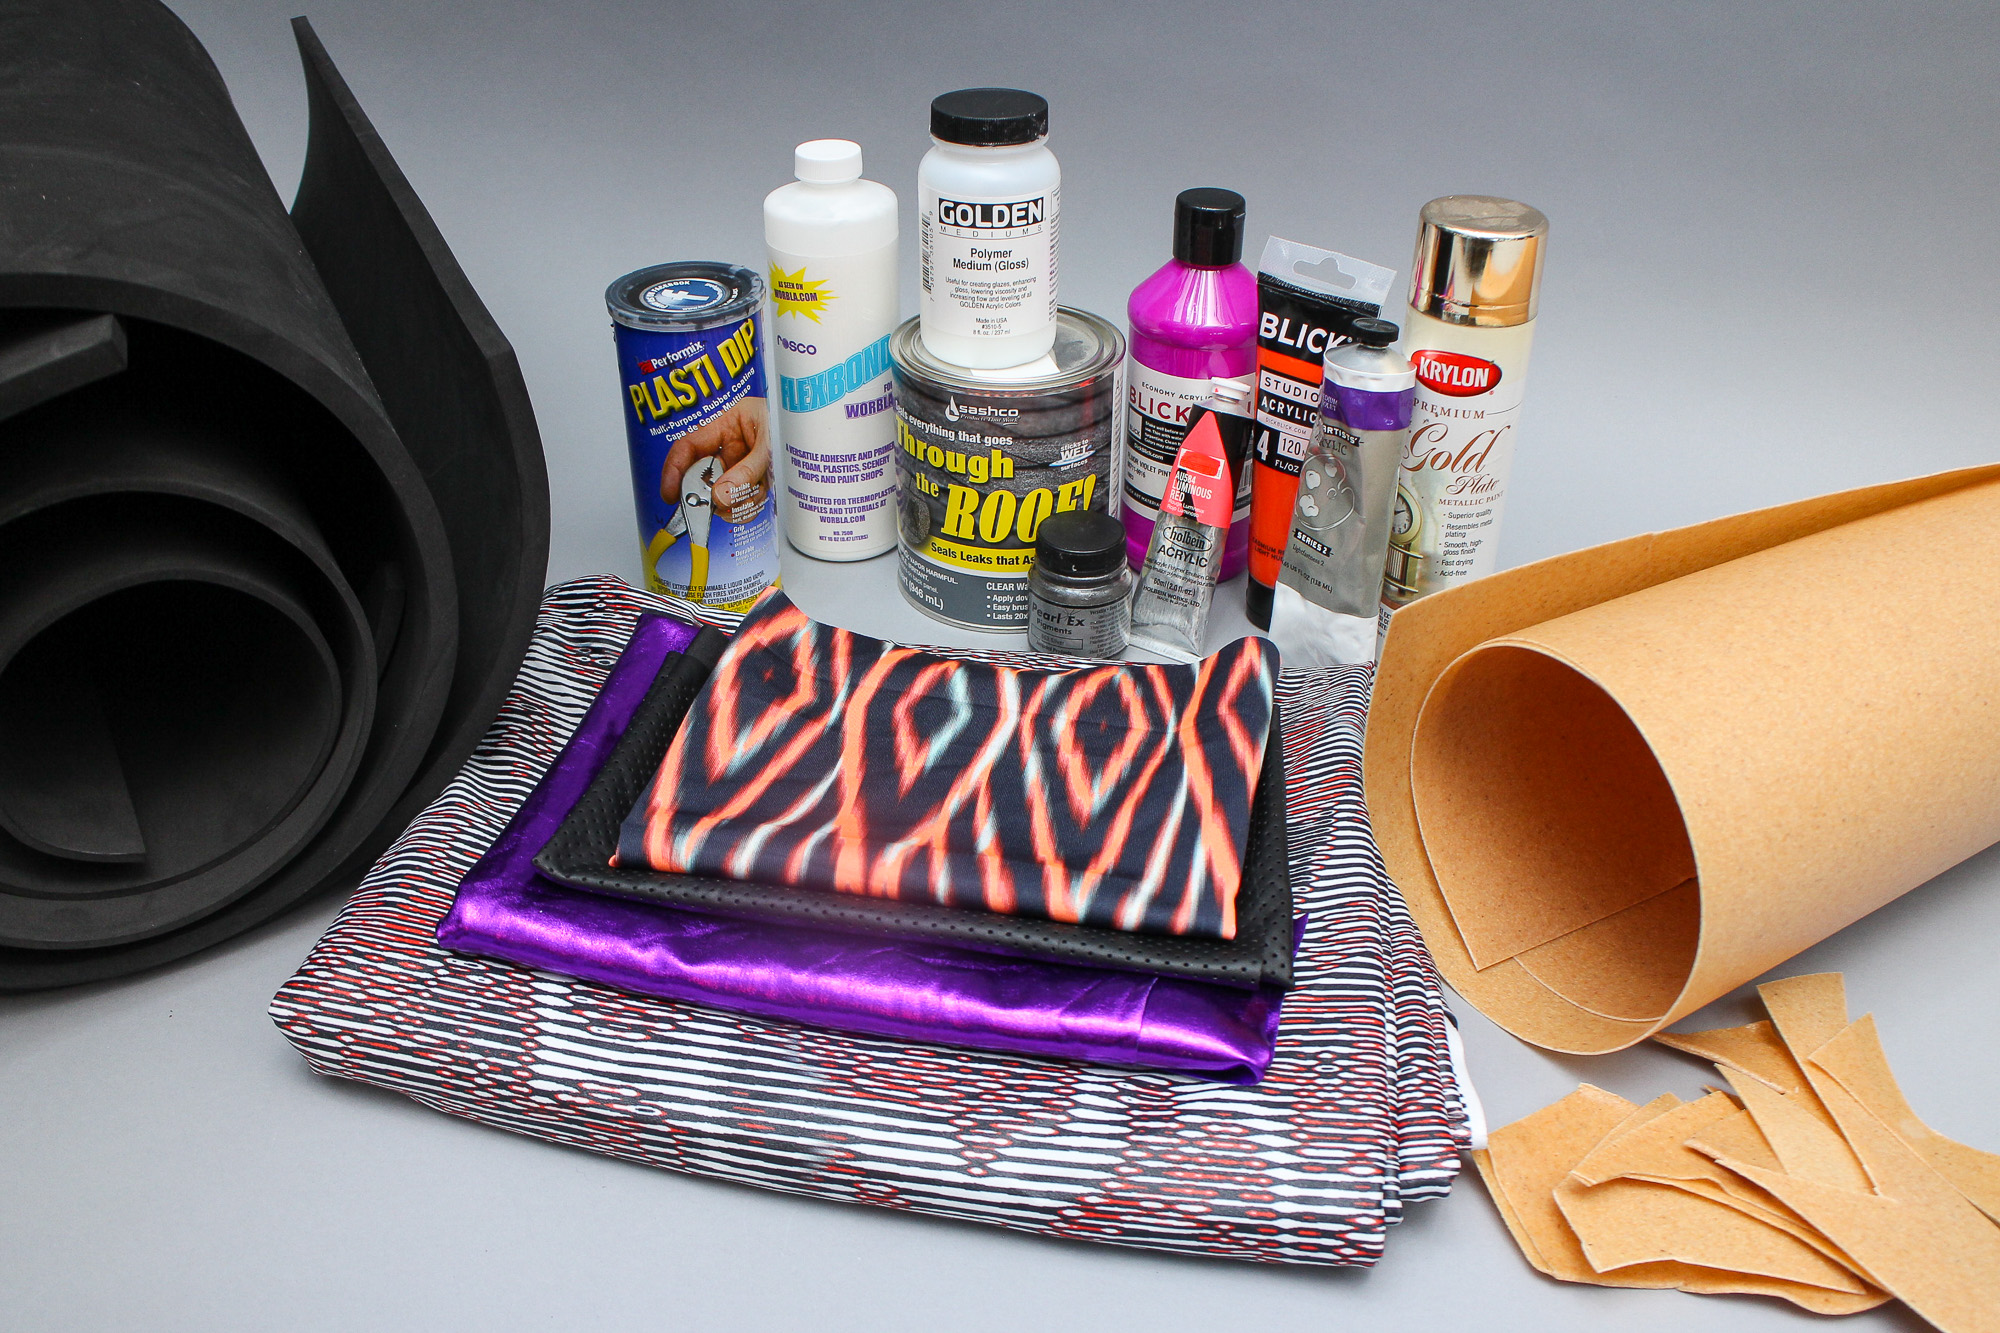 Picture of Materials for Superhero Costume Construction